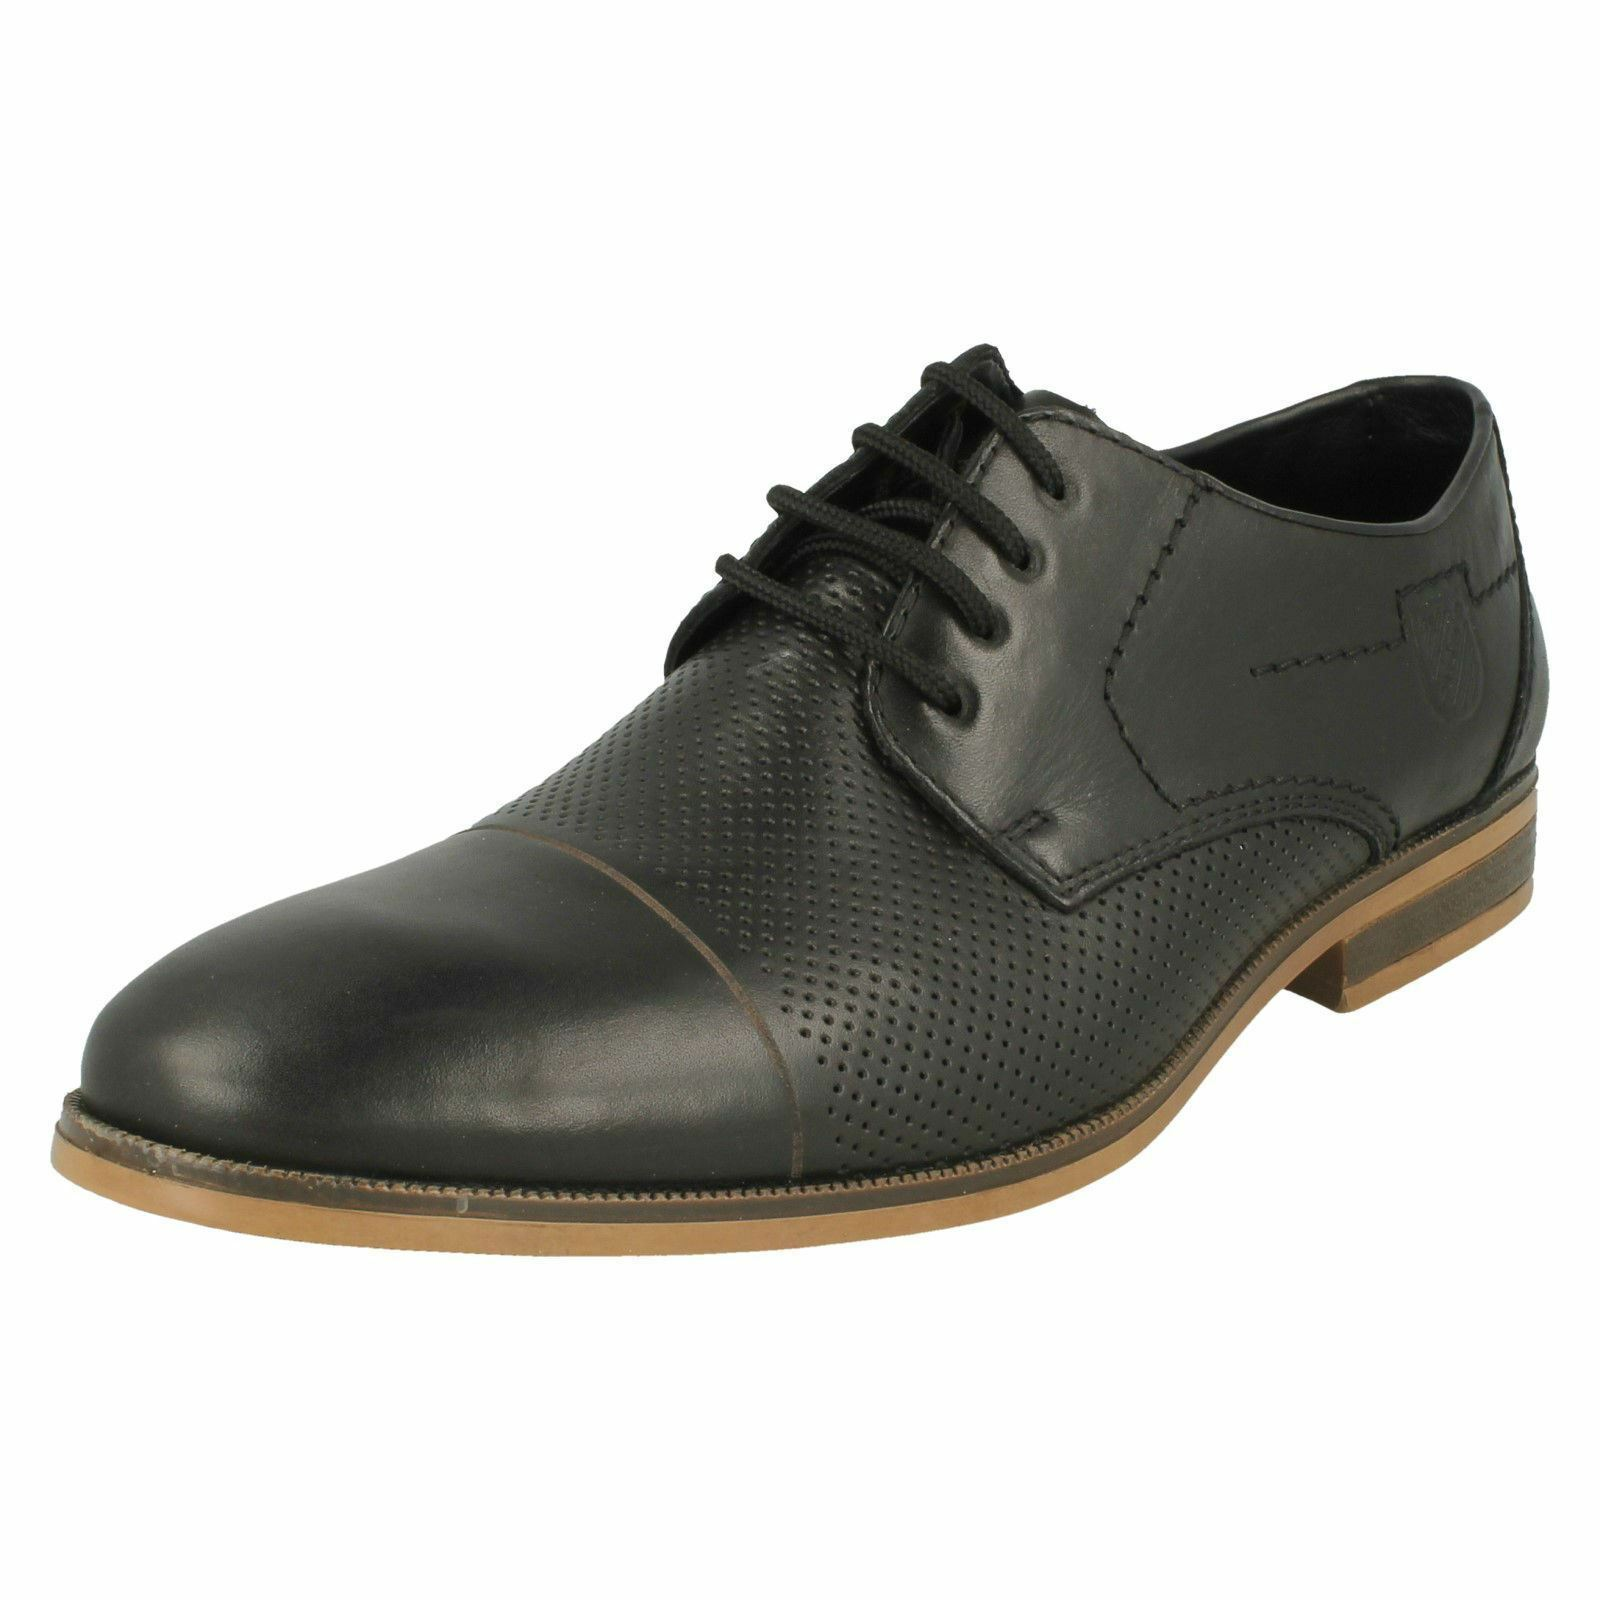 Mens Rieker 11615 Black Leather Smart Casual Lace Up Shoes